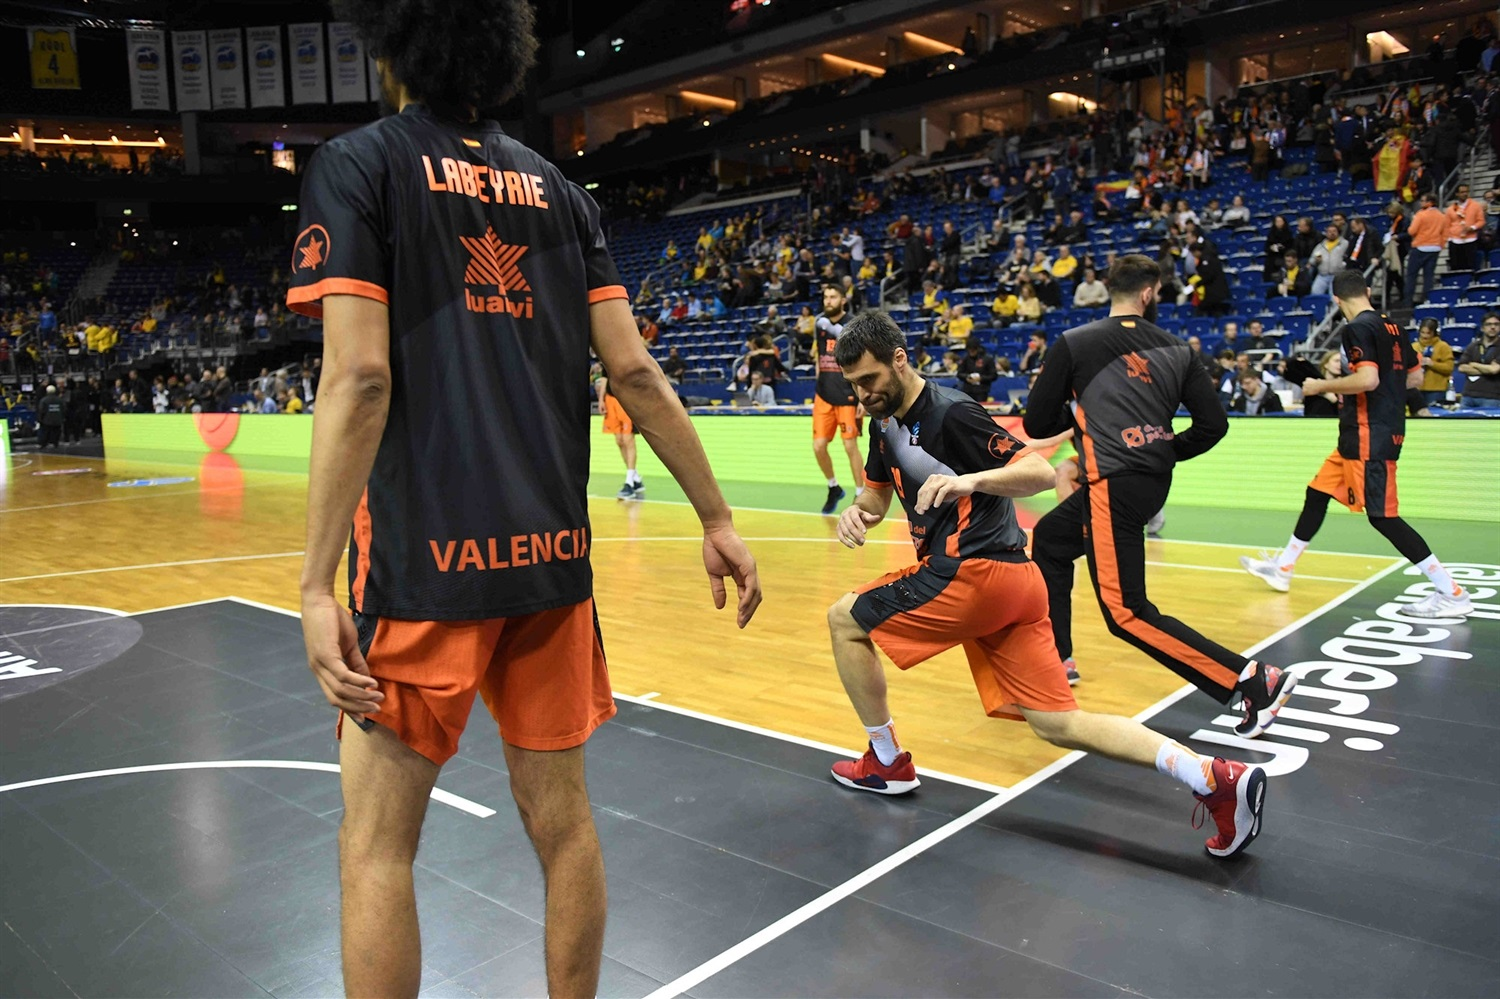 Valencia Basket in pregame - Finals Game 2 - EC18